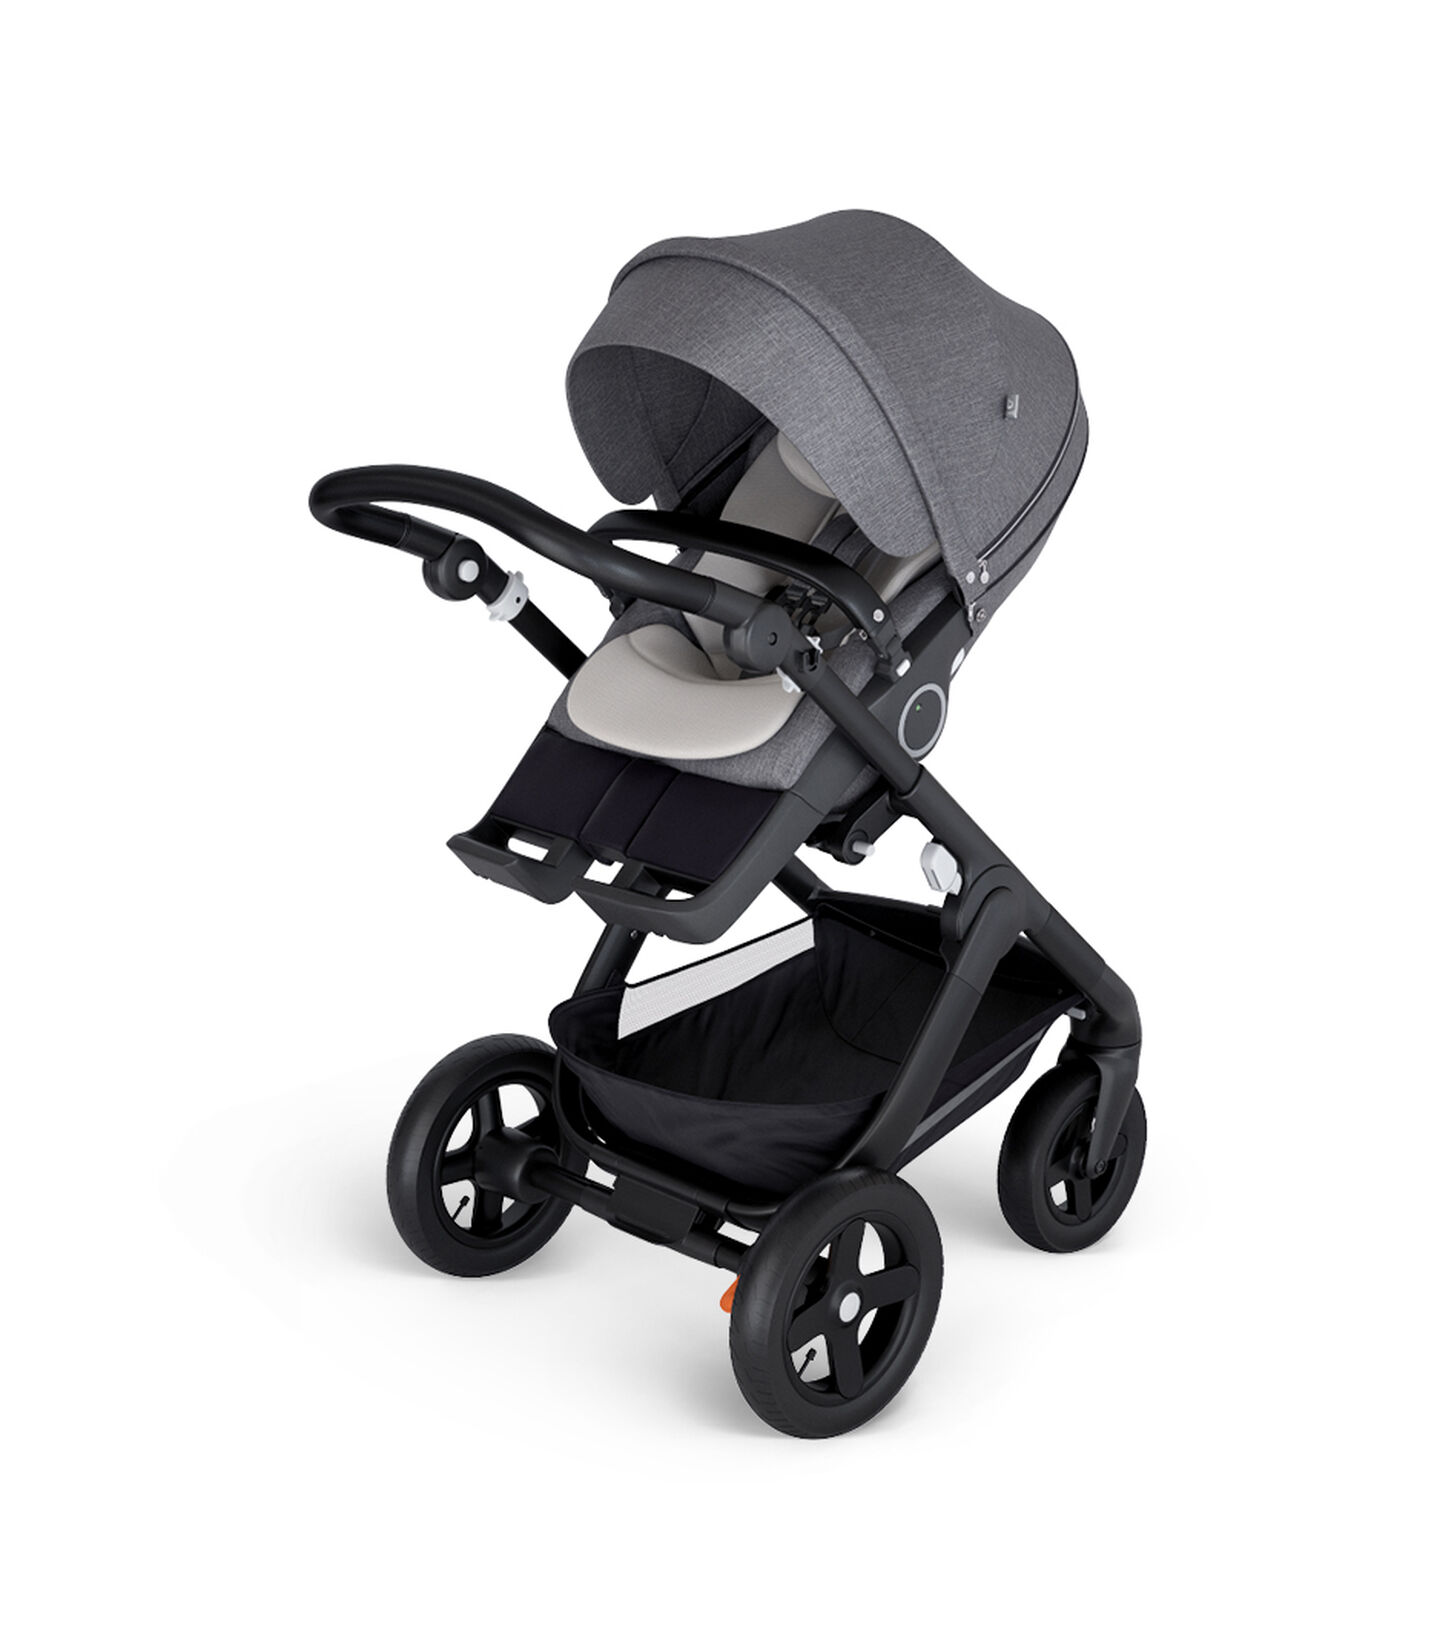 Stokke® Trailz™ with Black Chassis and Stokke® Stroller Seat Black Melange. Stokke® Stroller Seat Inlay, Mesh.